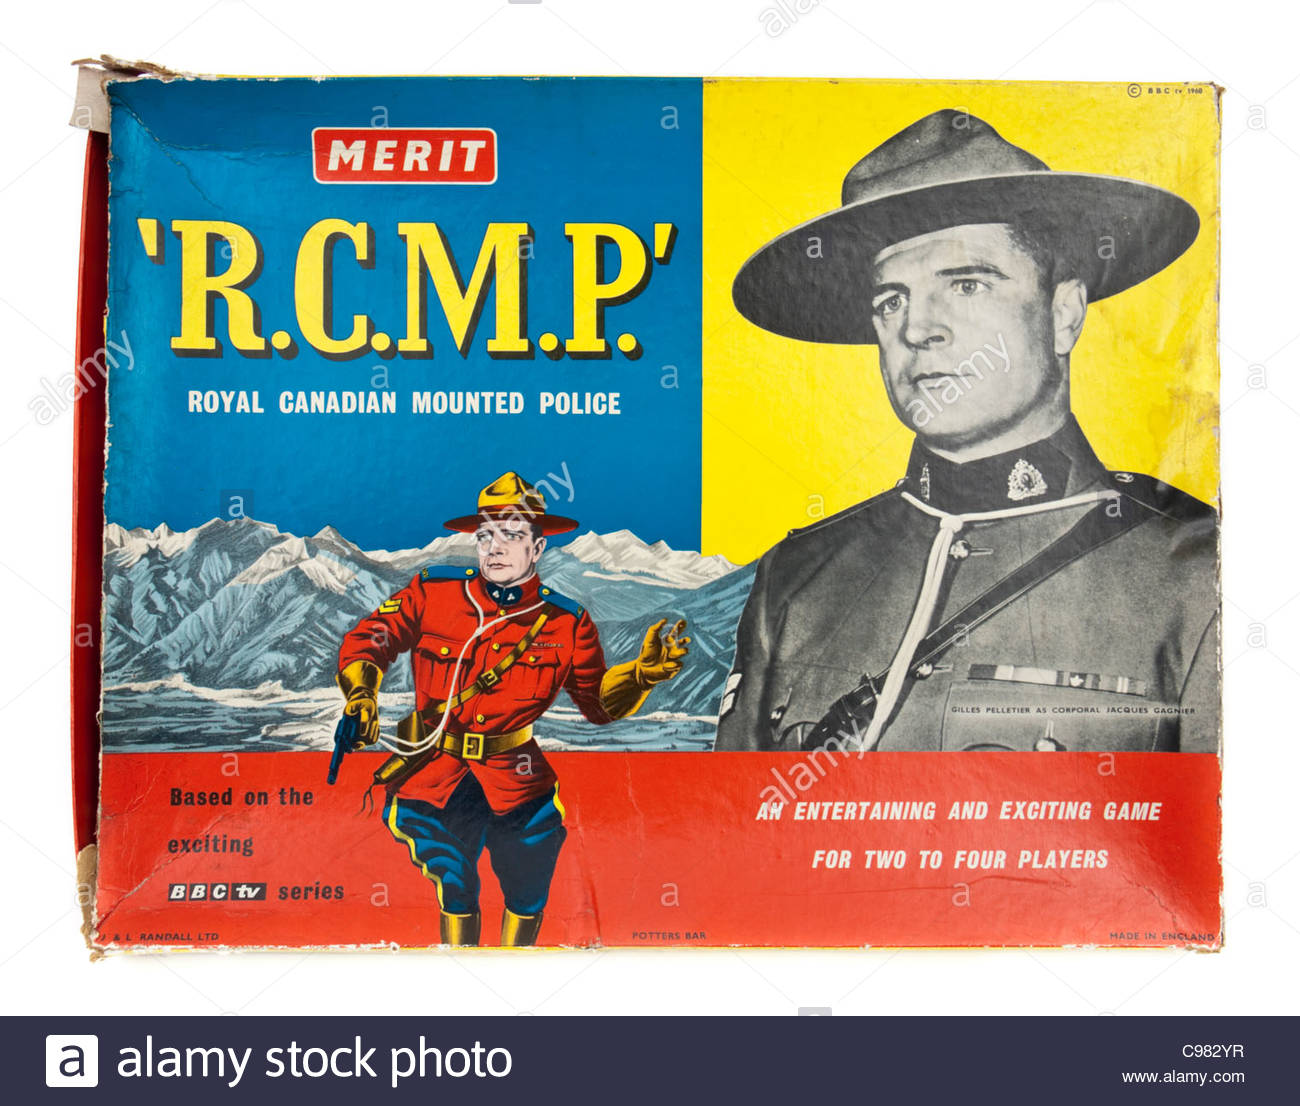 Vintage 1960's R.C.M.P (Royal Canadian Mounted Police) board game by Merit (J &L Randall Ltd) - Stock Image